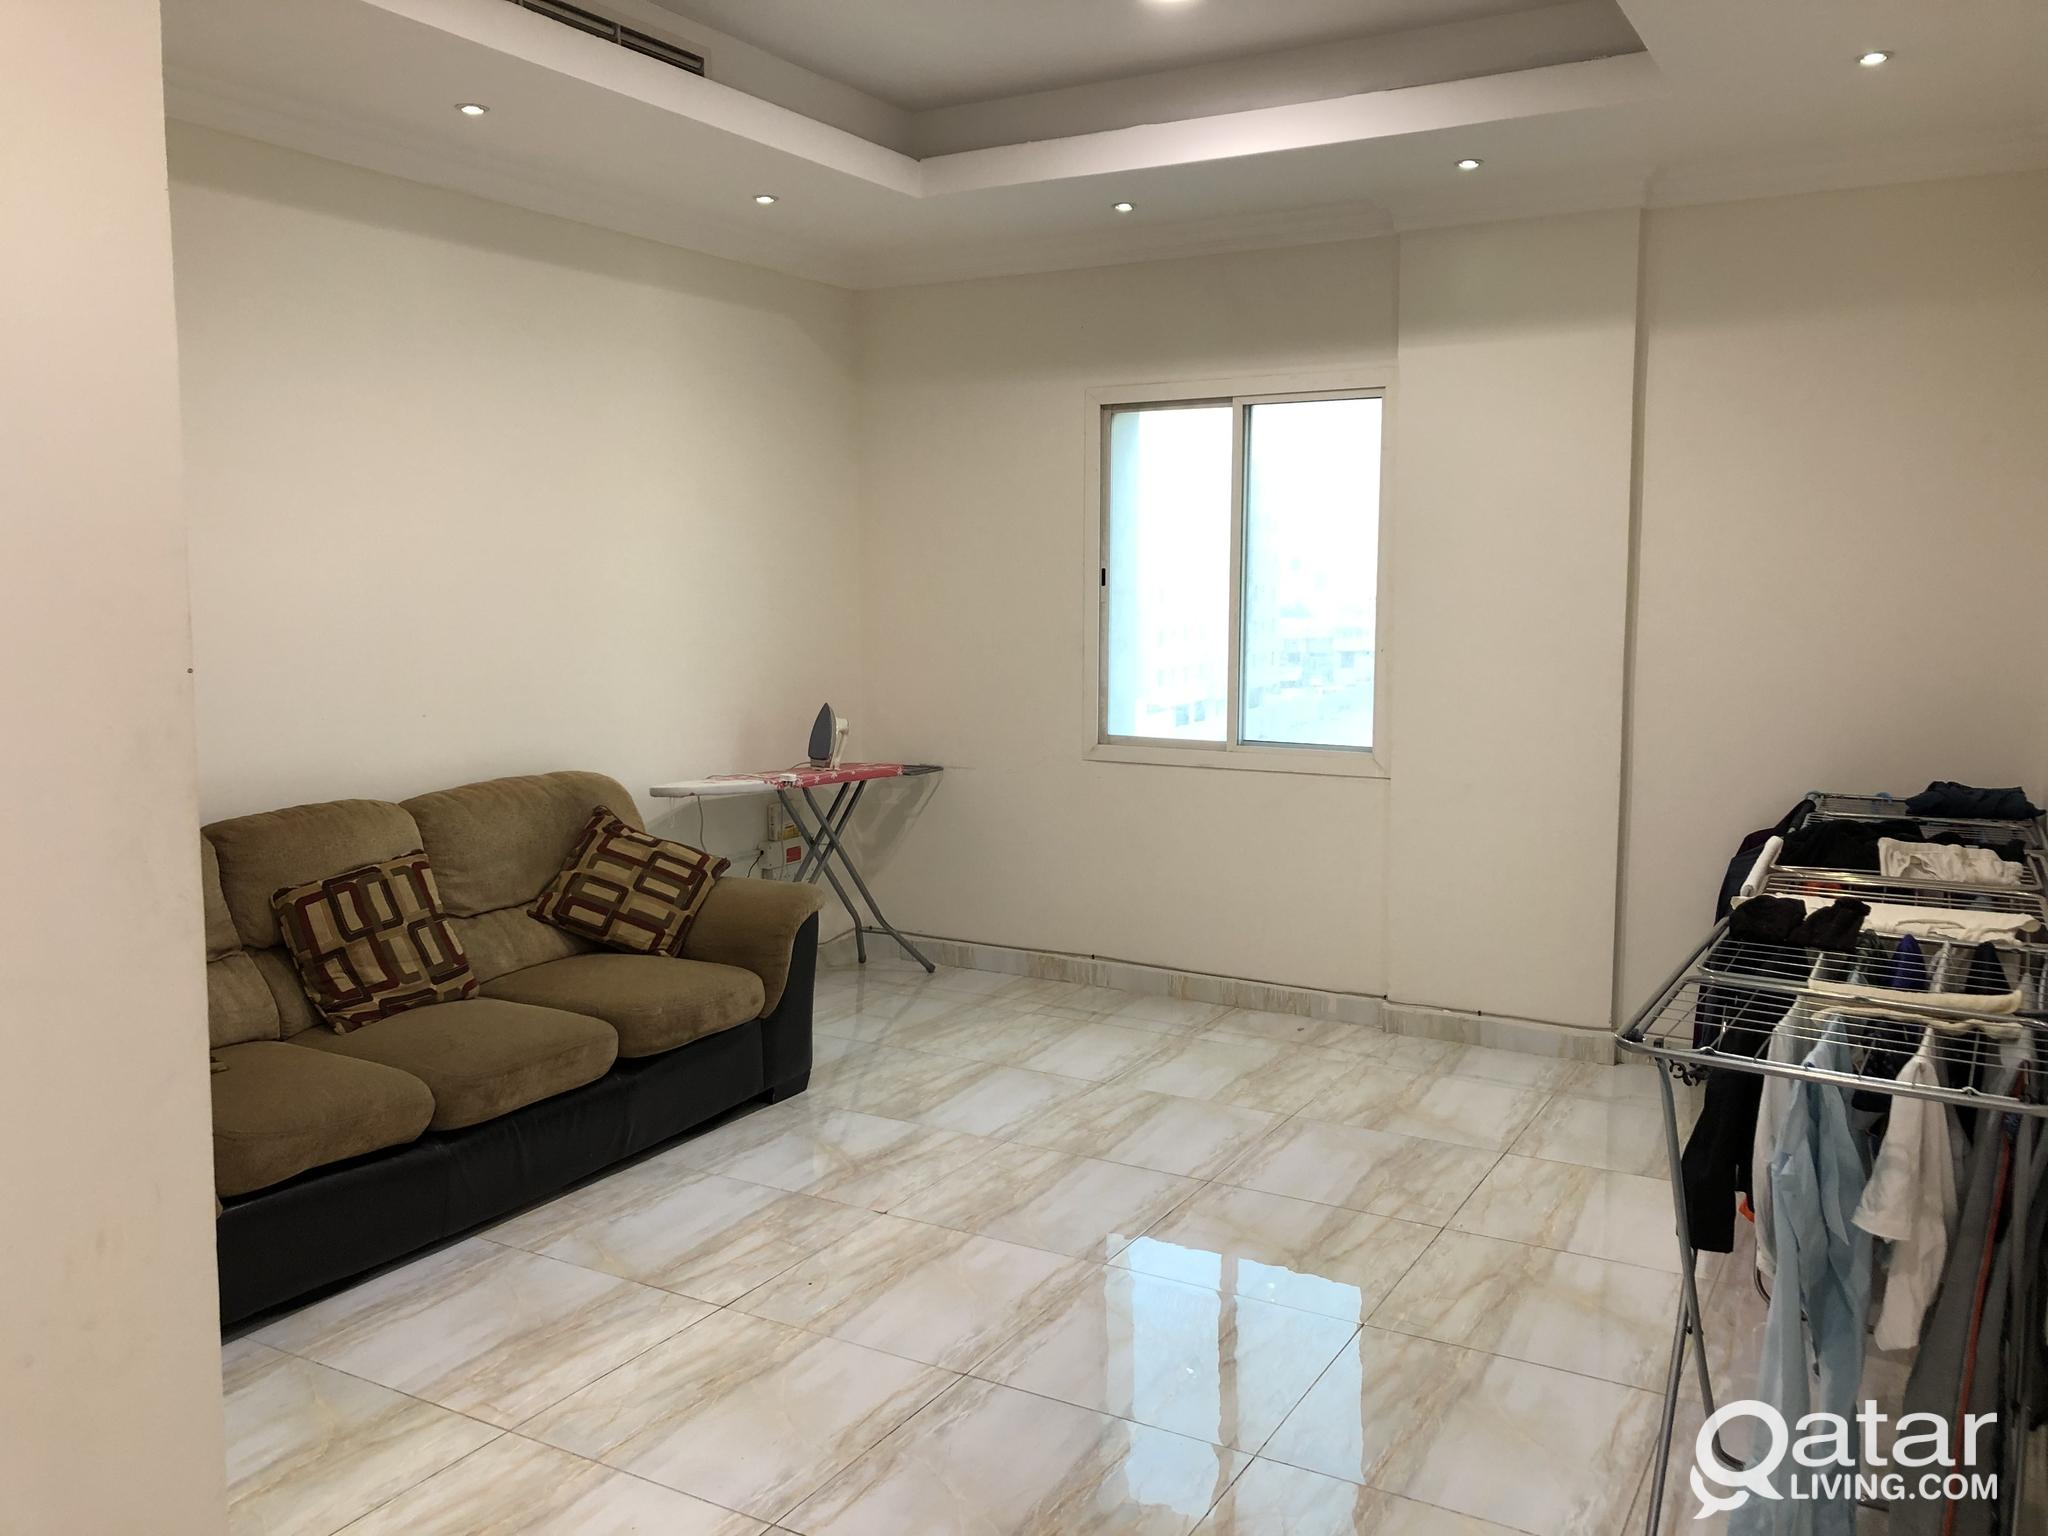 FULLY FURNISHED BED SPACE AVAILABLE IN  NEW FLATS